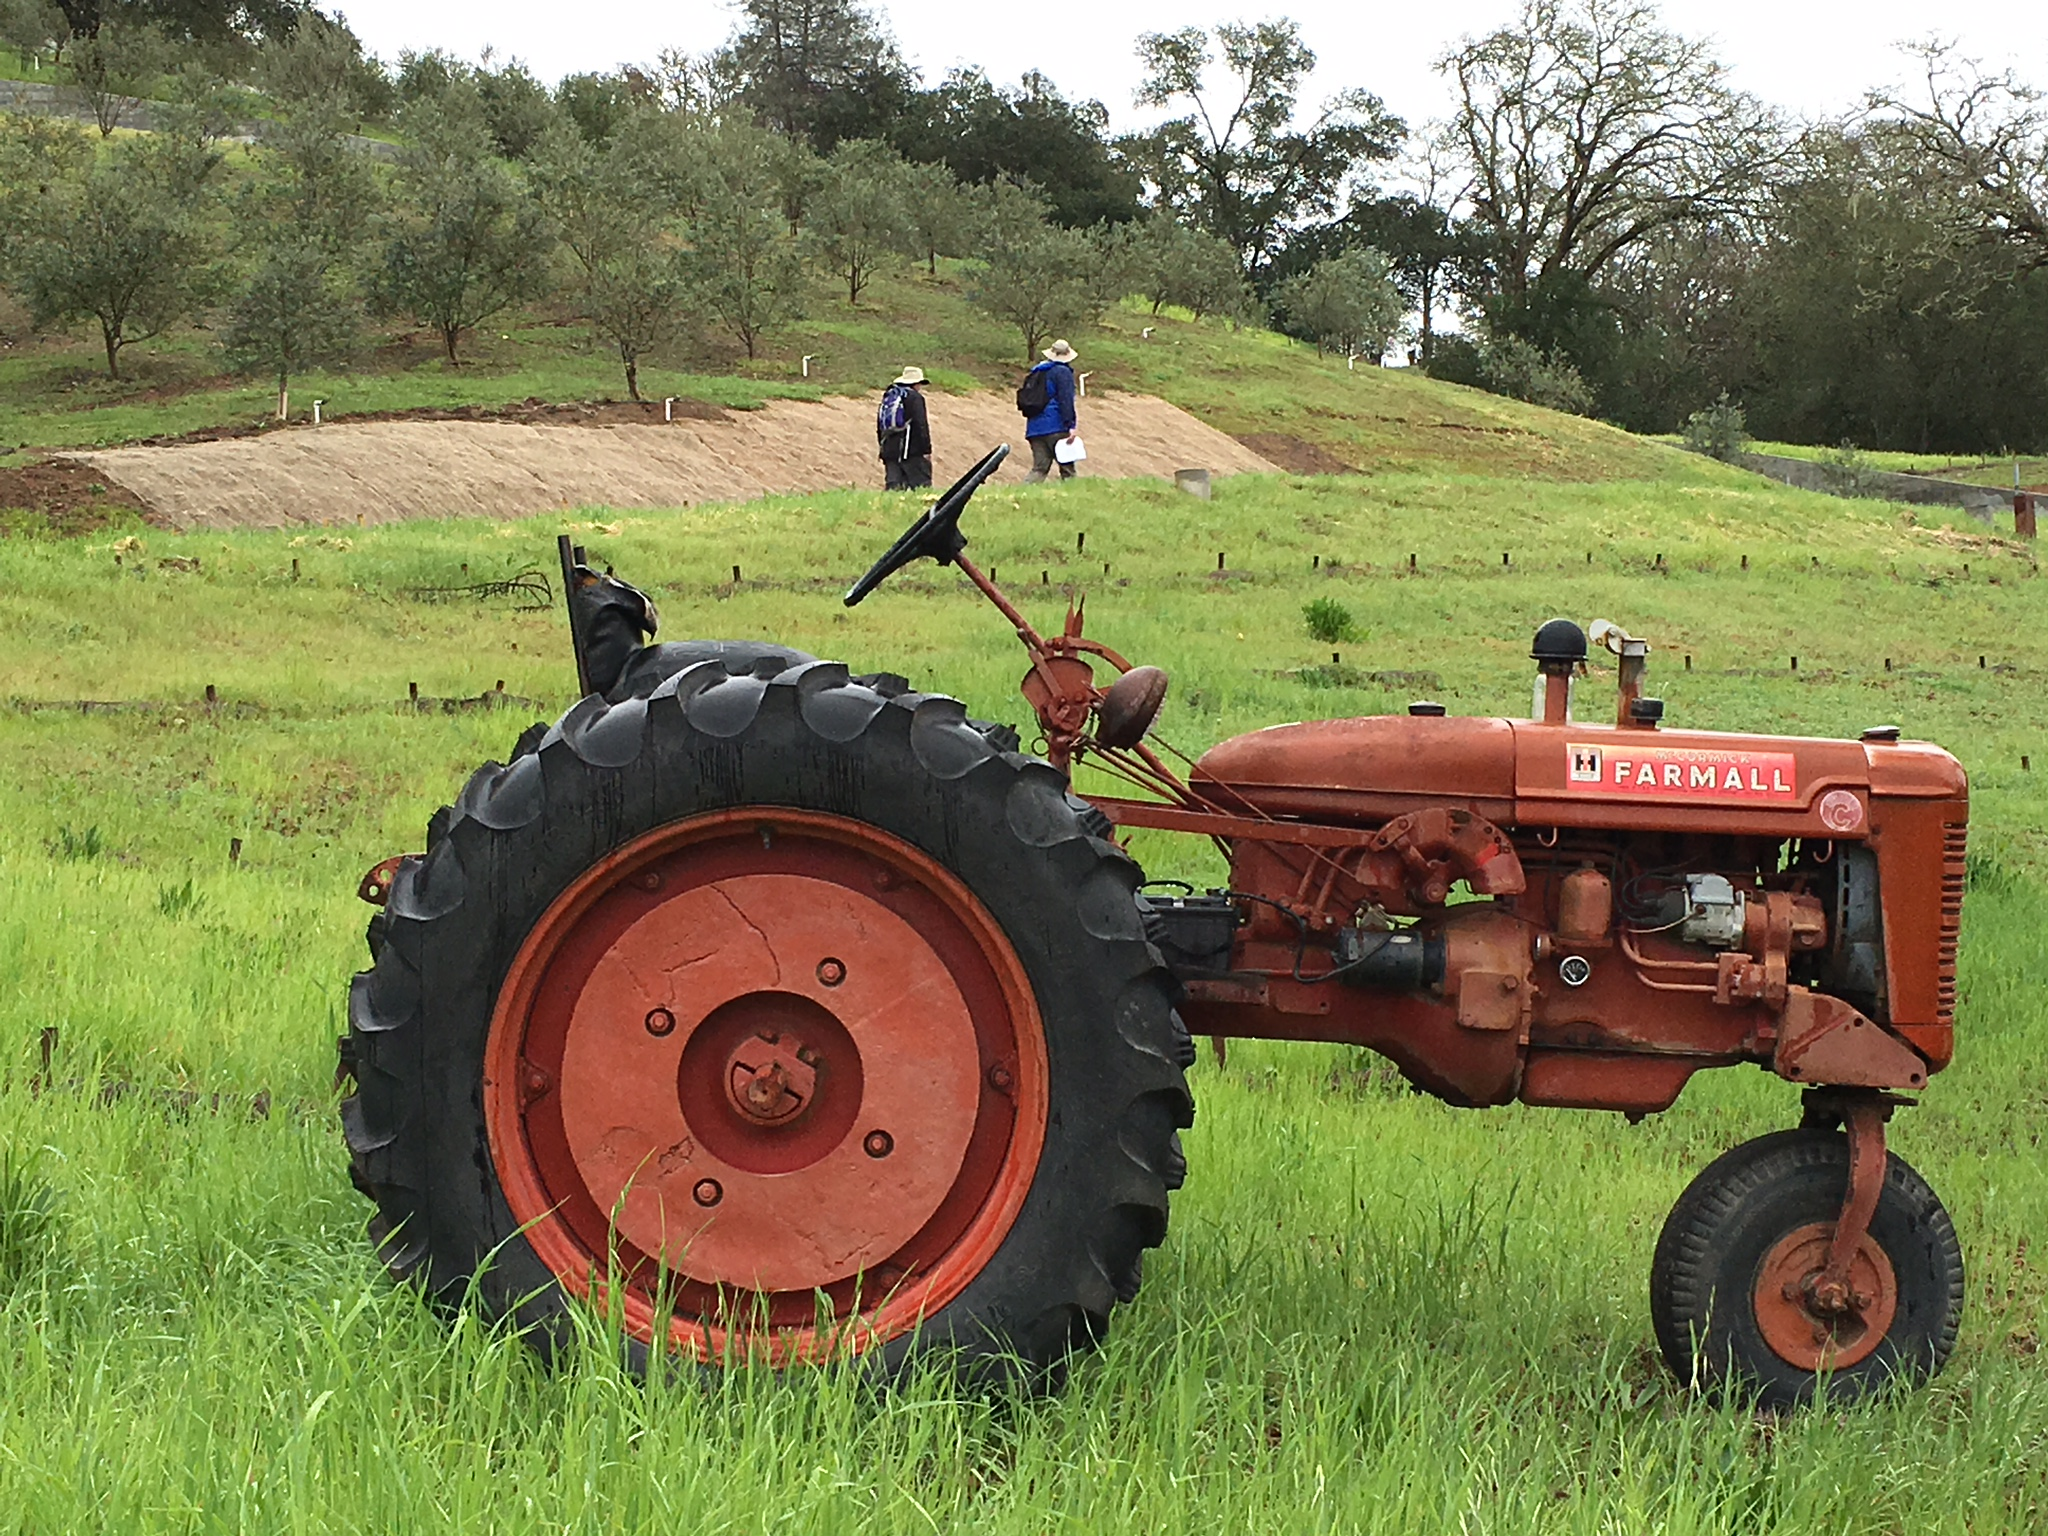 An old tractor in a field in Dry Creek Valley near Healdsburg